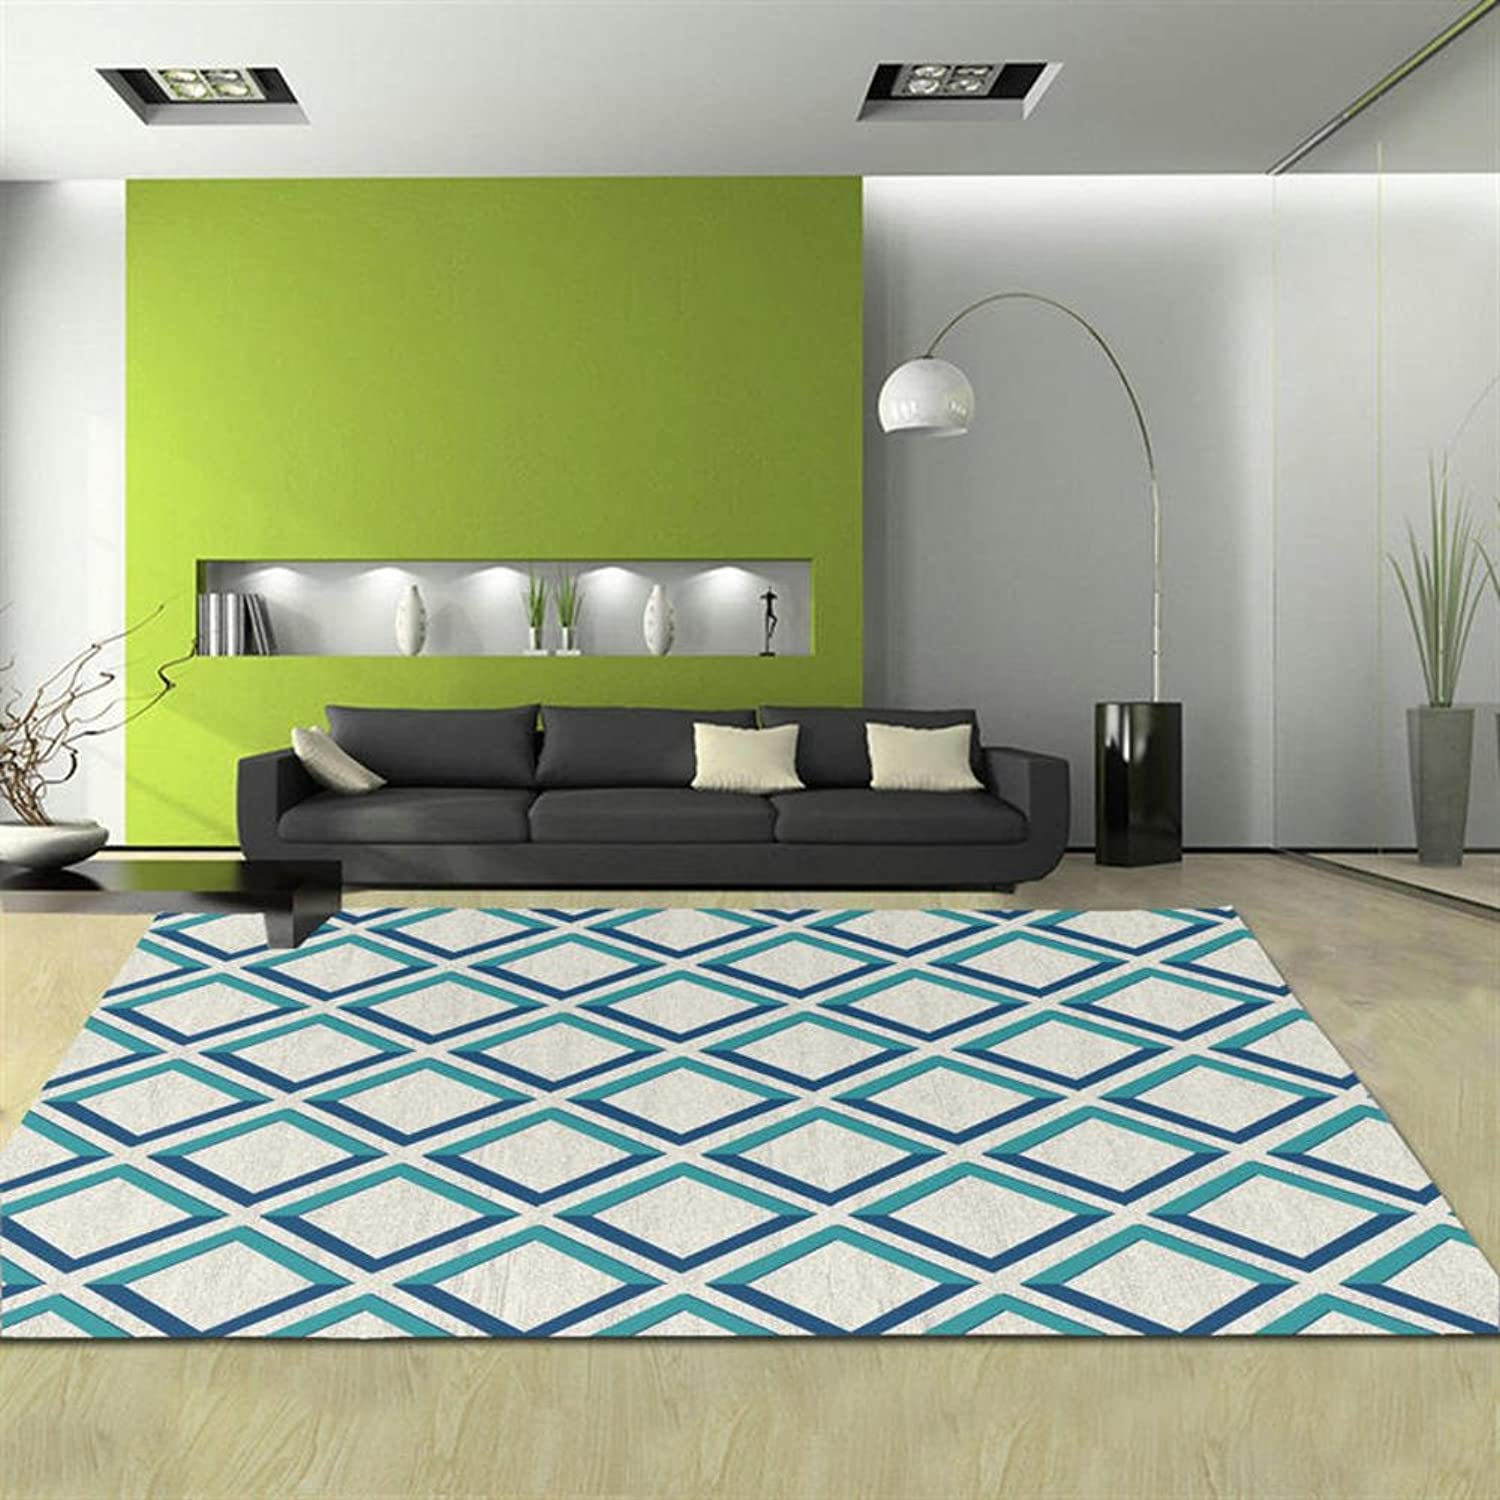 Pattern rectangular carpet mat The carpet for the living room Simple carpet Bedroom Tea table blanket Mats beside the bed-Q 80x150cm(31x59inch)